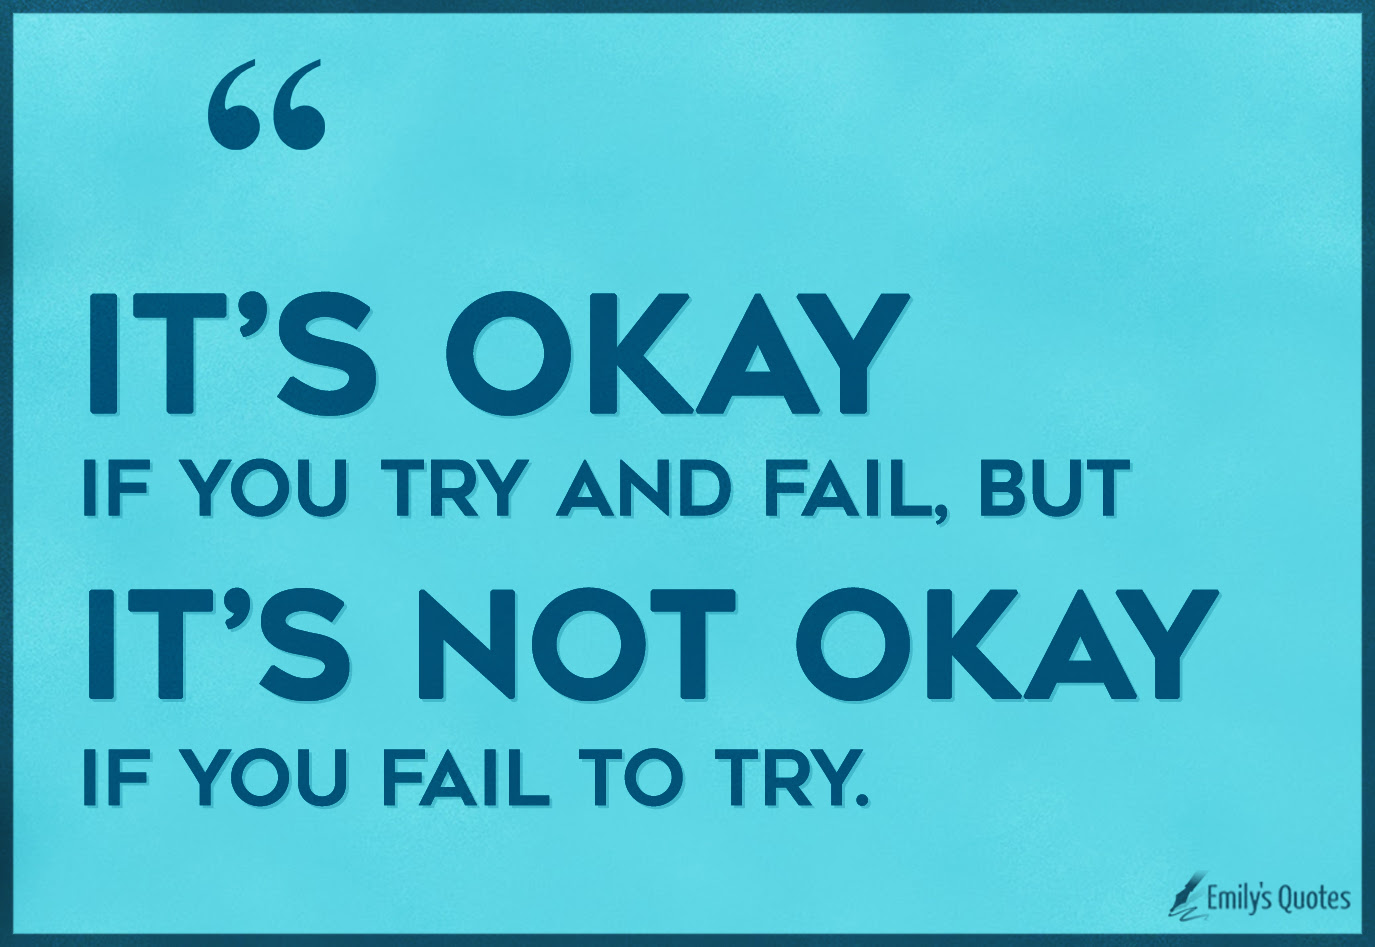 Its Okay If You Try And Fail But Its Not Okay If You Fail To Try